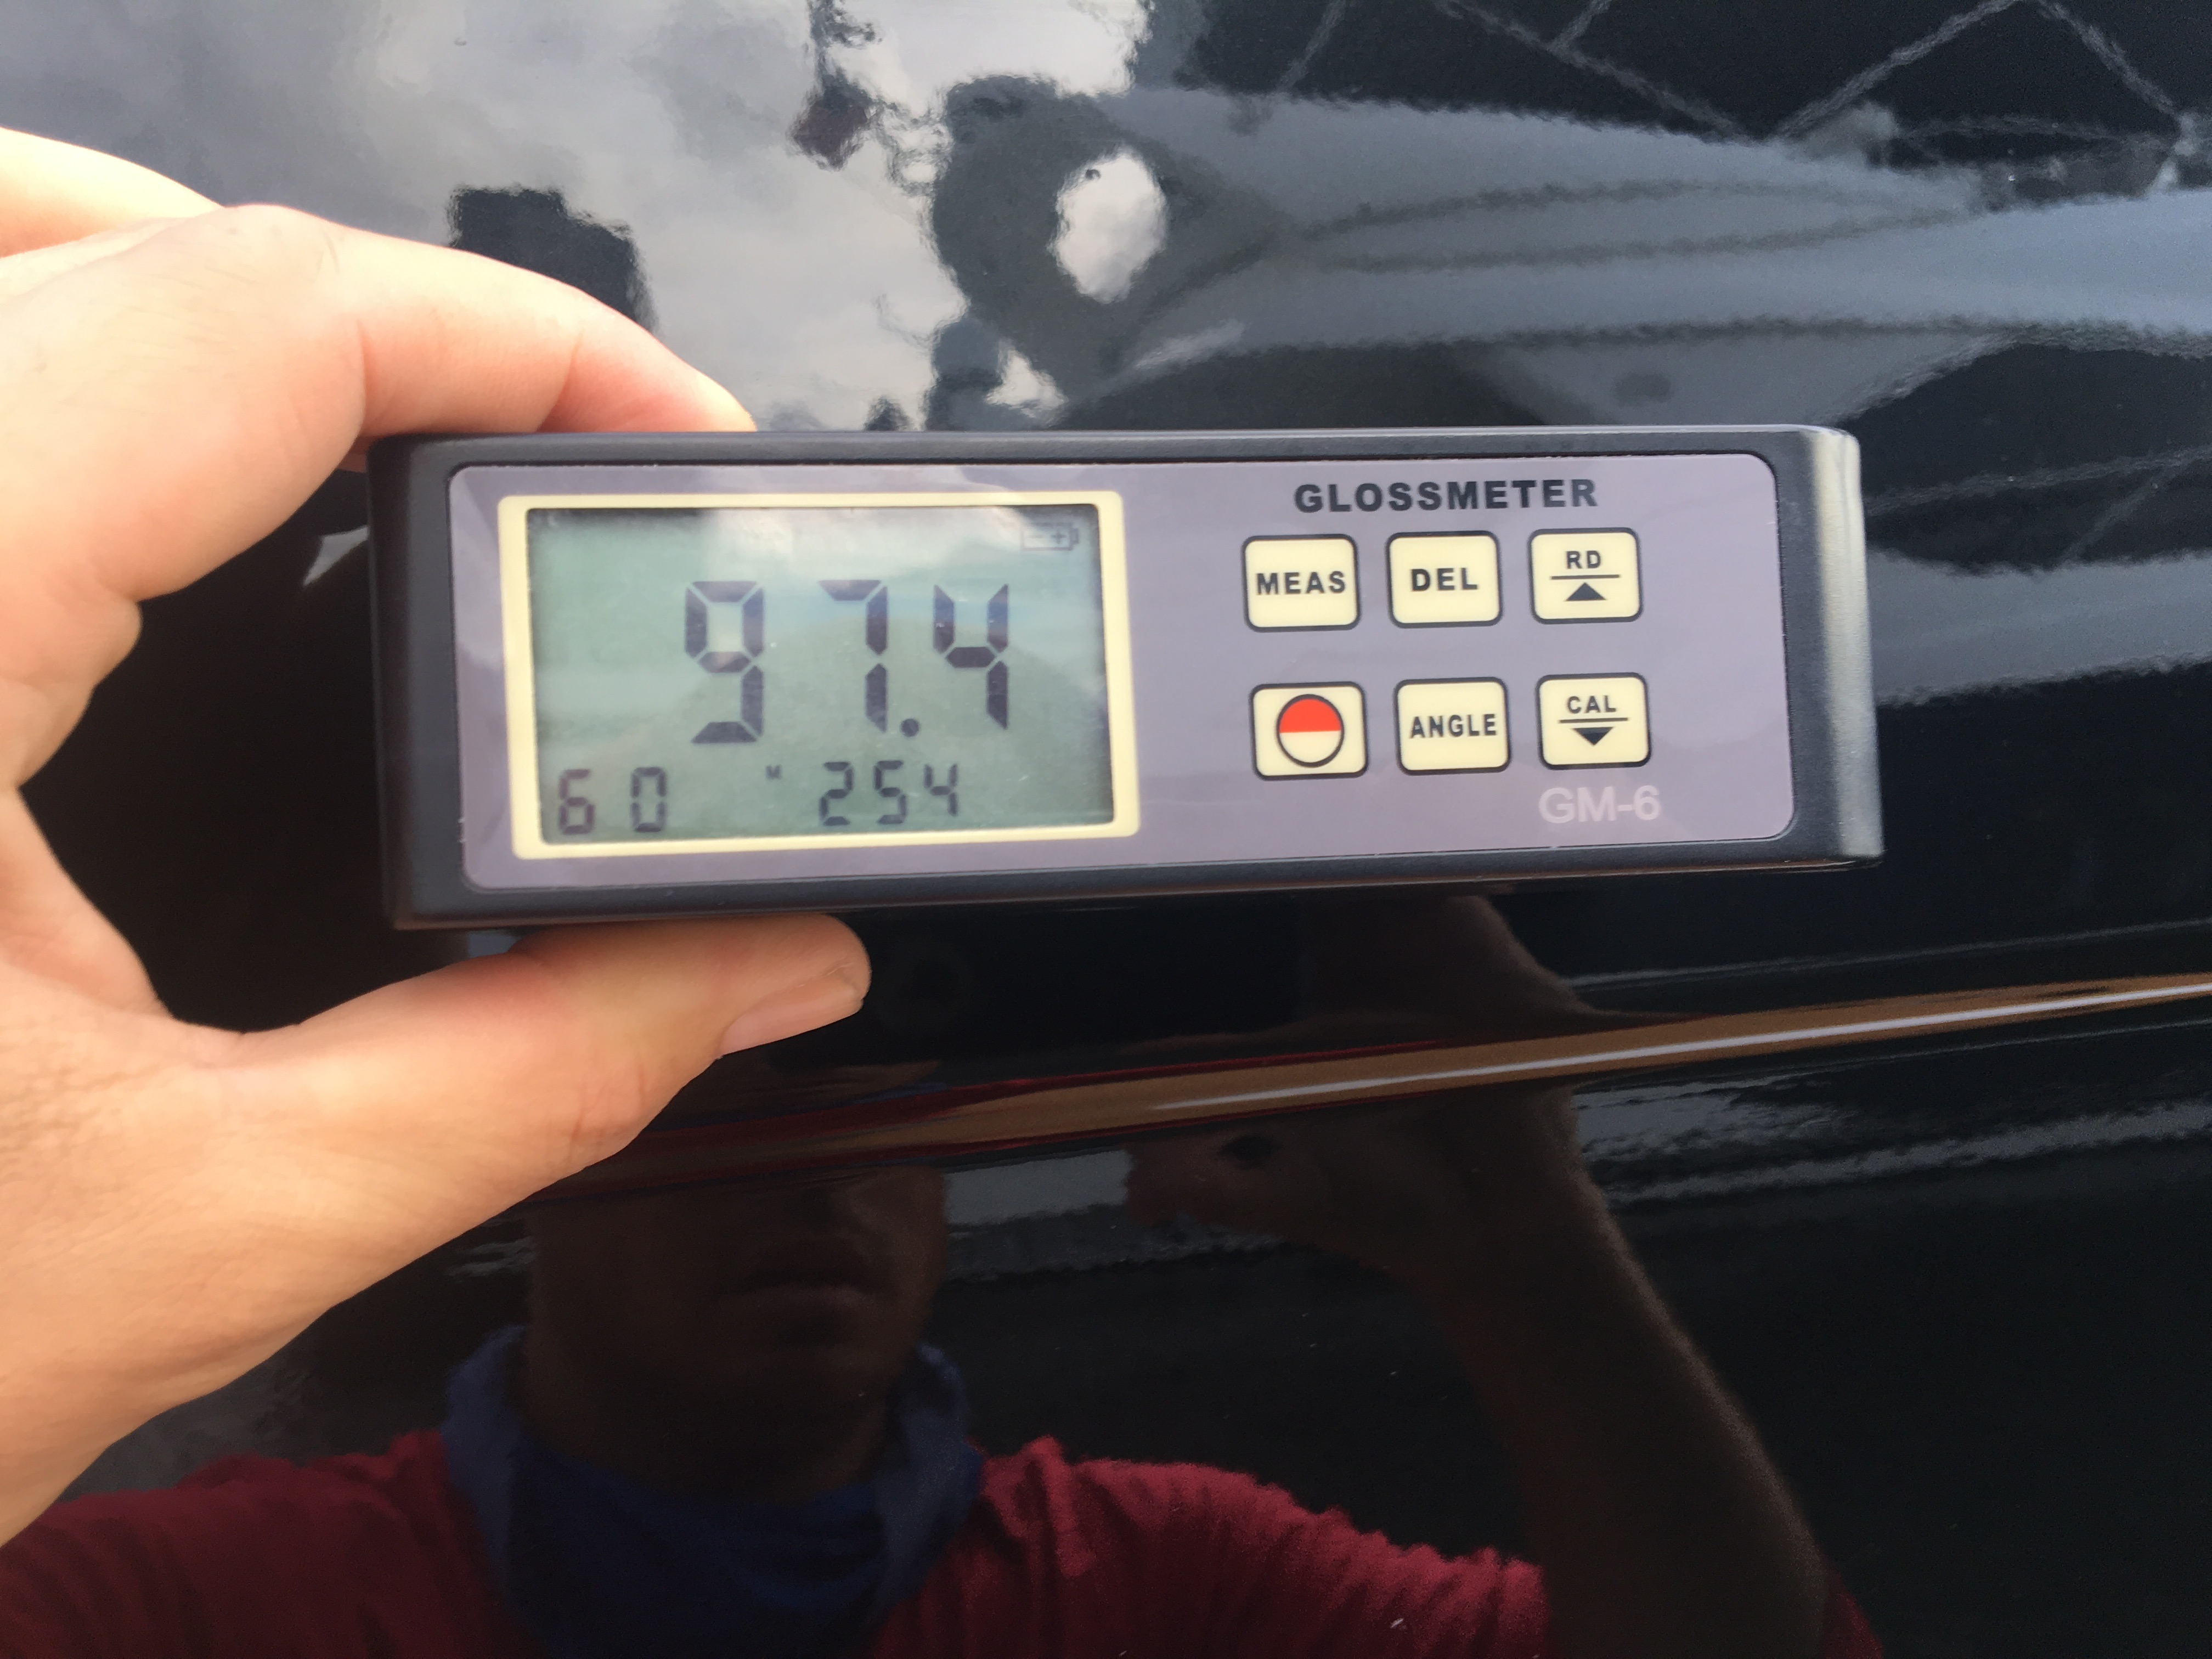 97.4 gloss meter reading on black hull of 66' Azimut